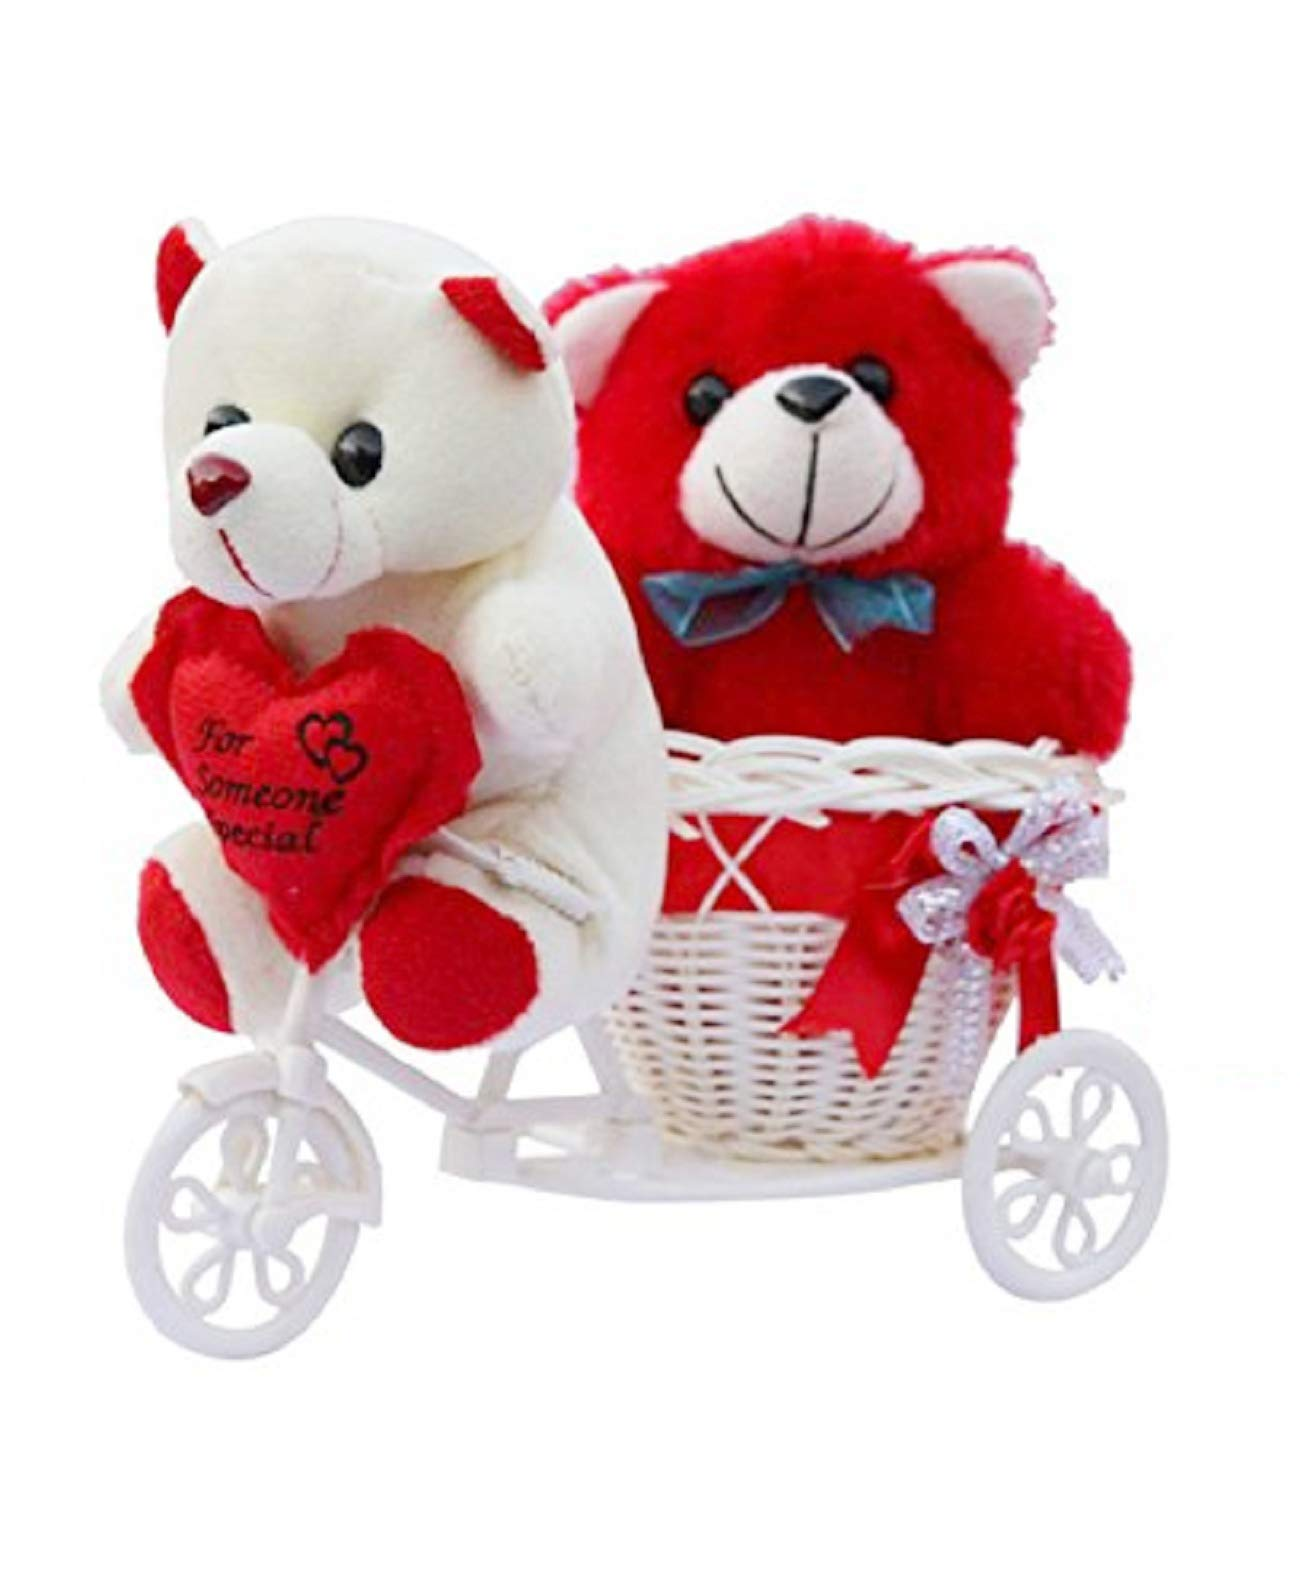 ME & YOU Romantic Cycle Teddy with Printed MDF Keychain Return Gifts for Wife Girlfriend and Sister On Birthday, Anniversary, Rakhi, Valentine's Day IZ18TCyKeyH-001 (B07F37732G) Amazon Price History, Amazon Price Tracker